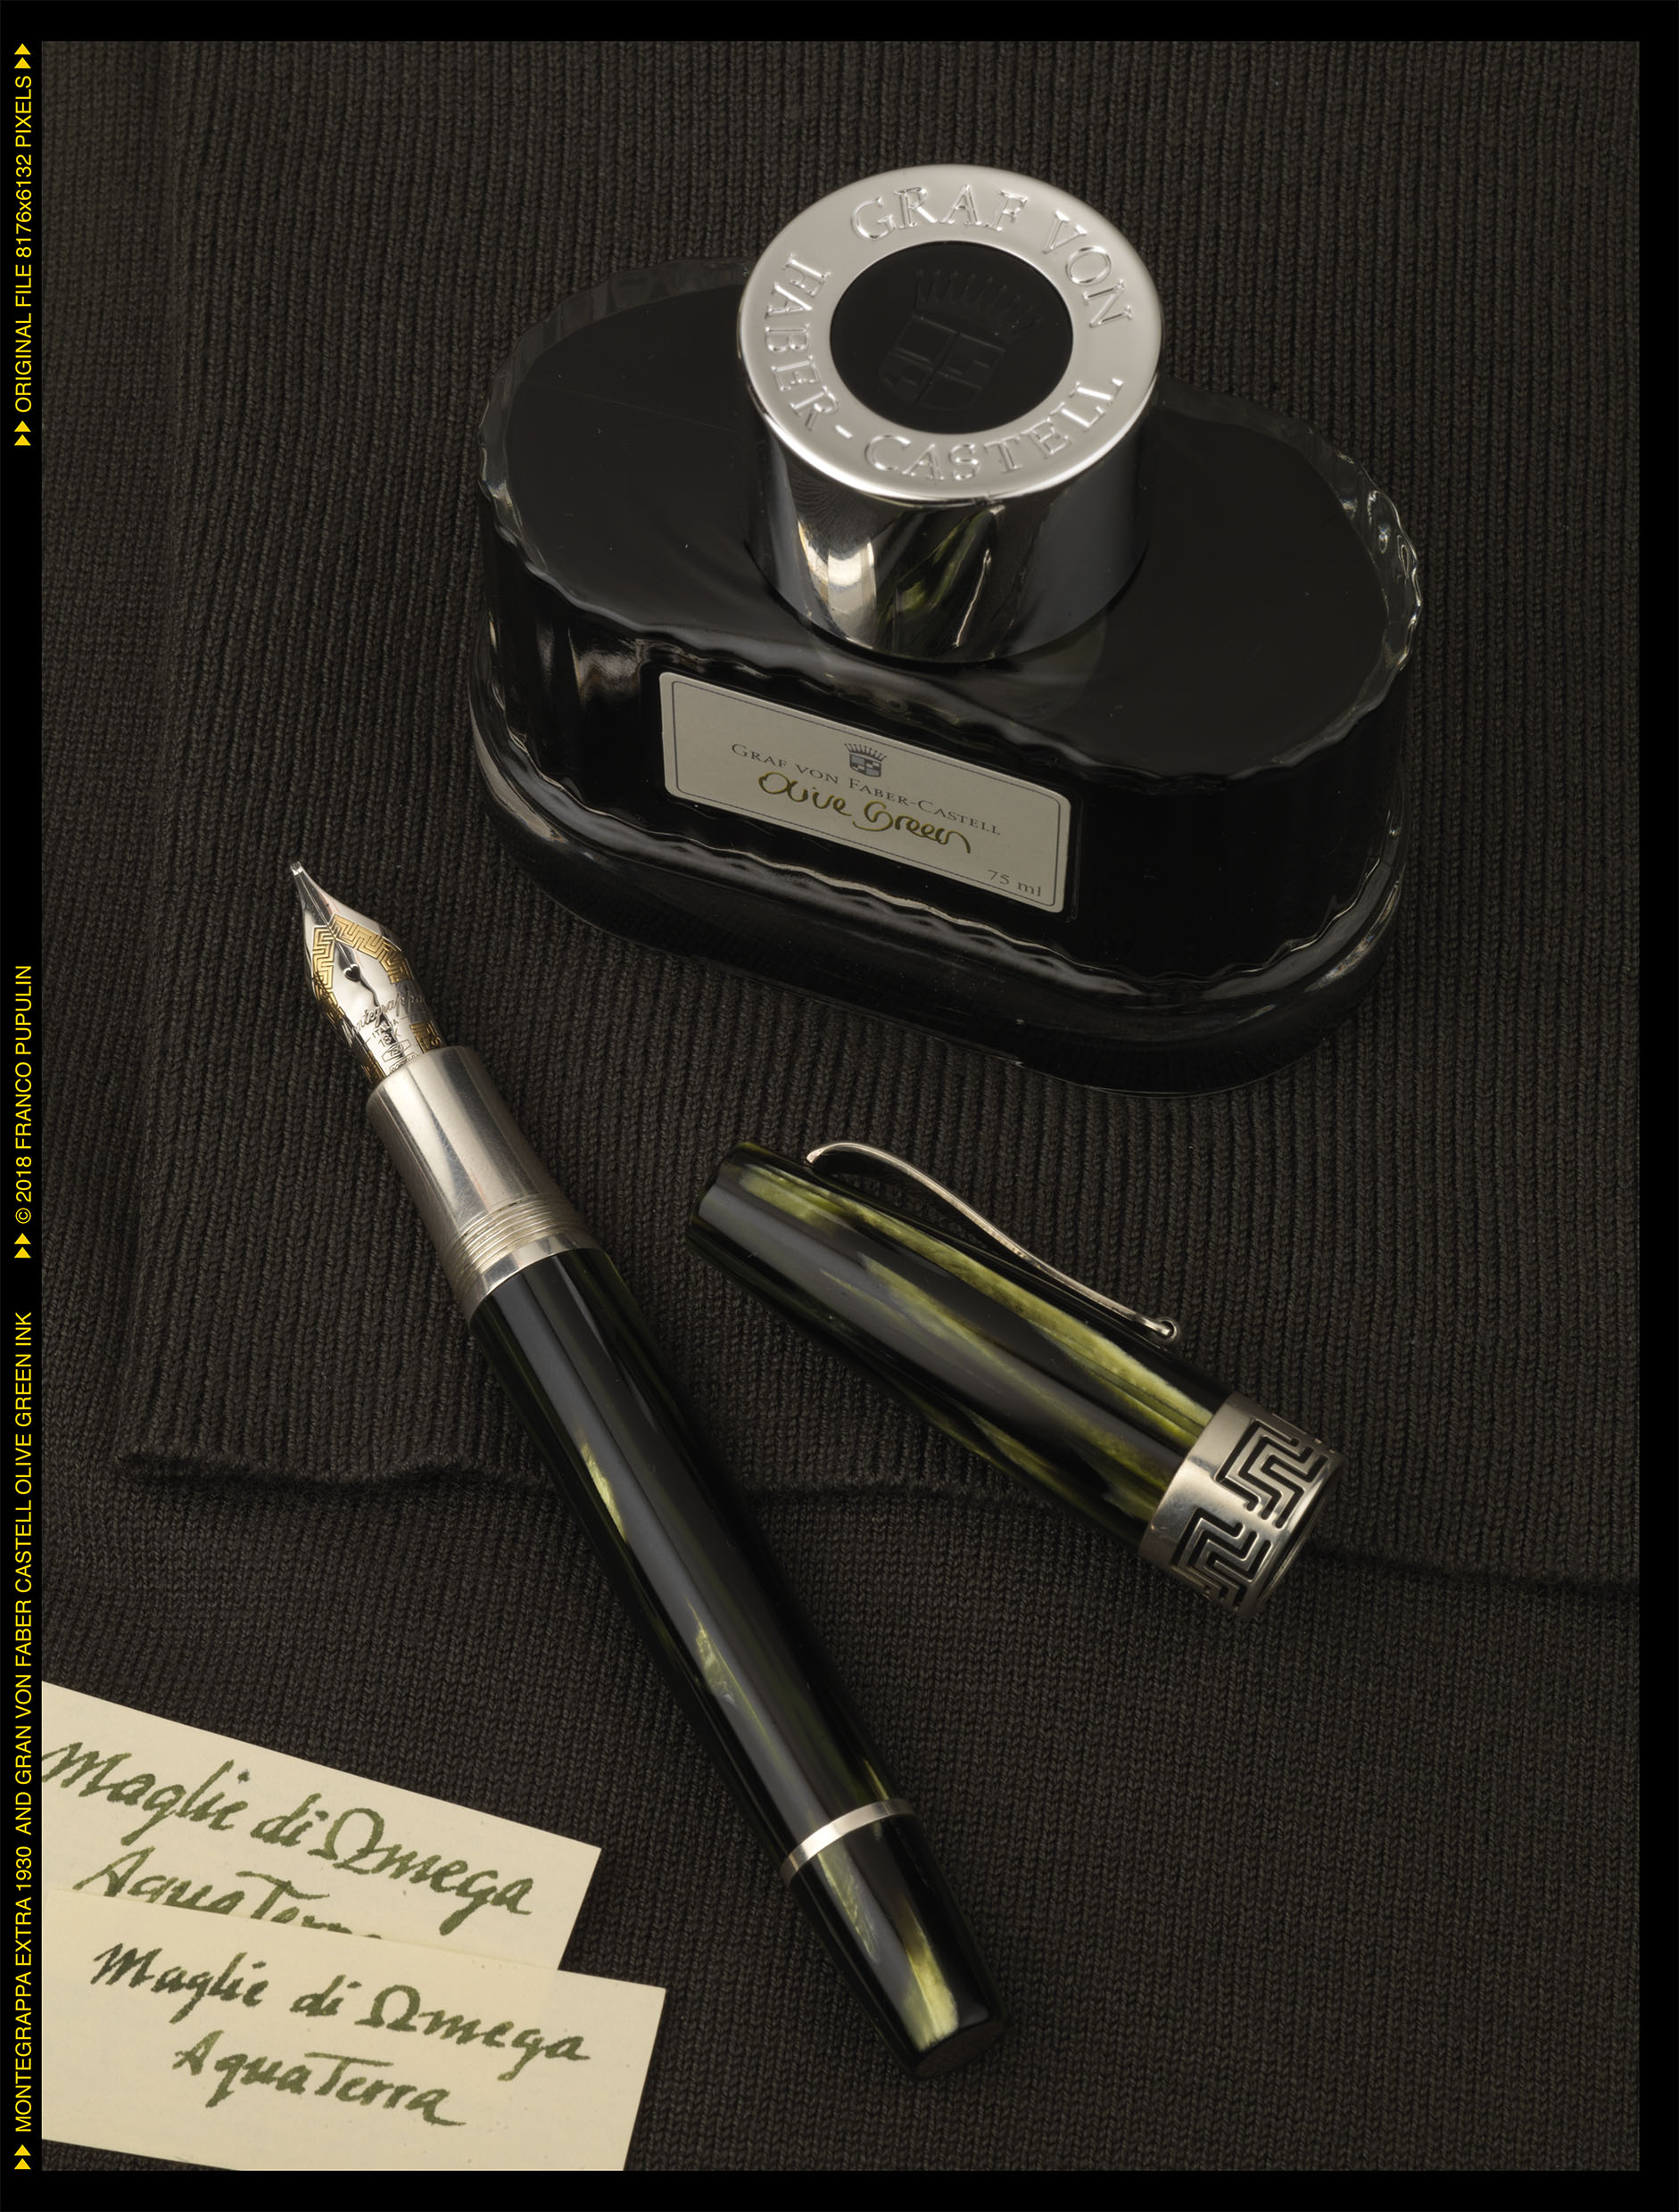 Montegrappa Extra and Olive Green.jpg